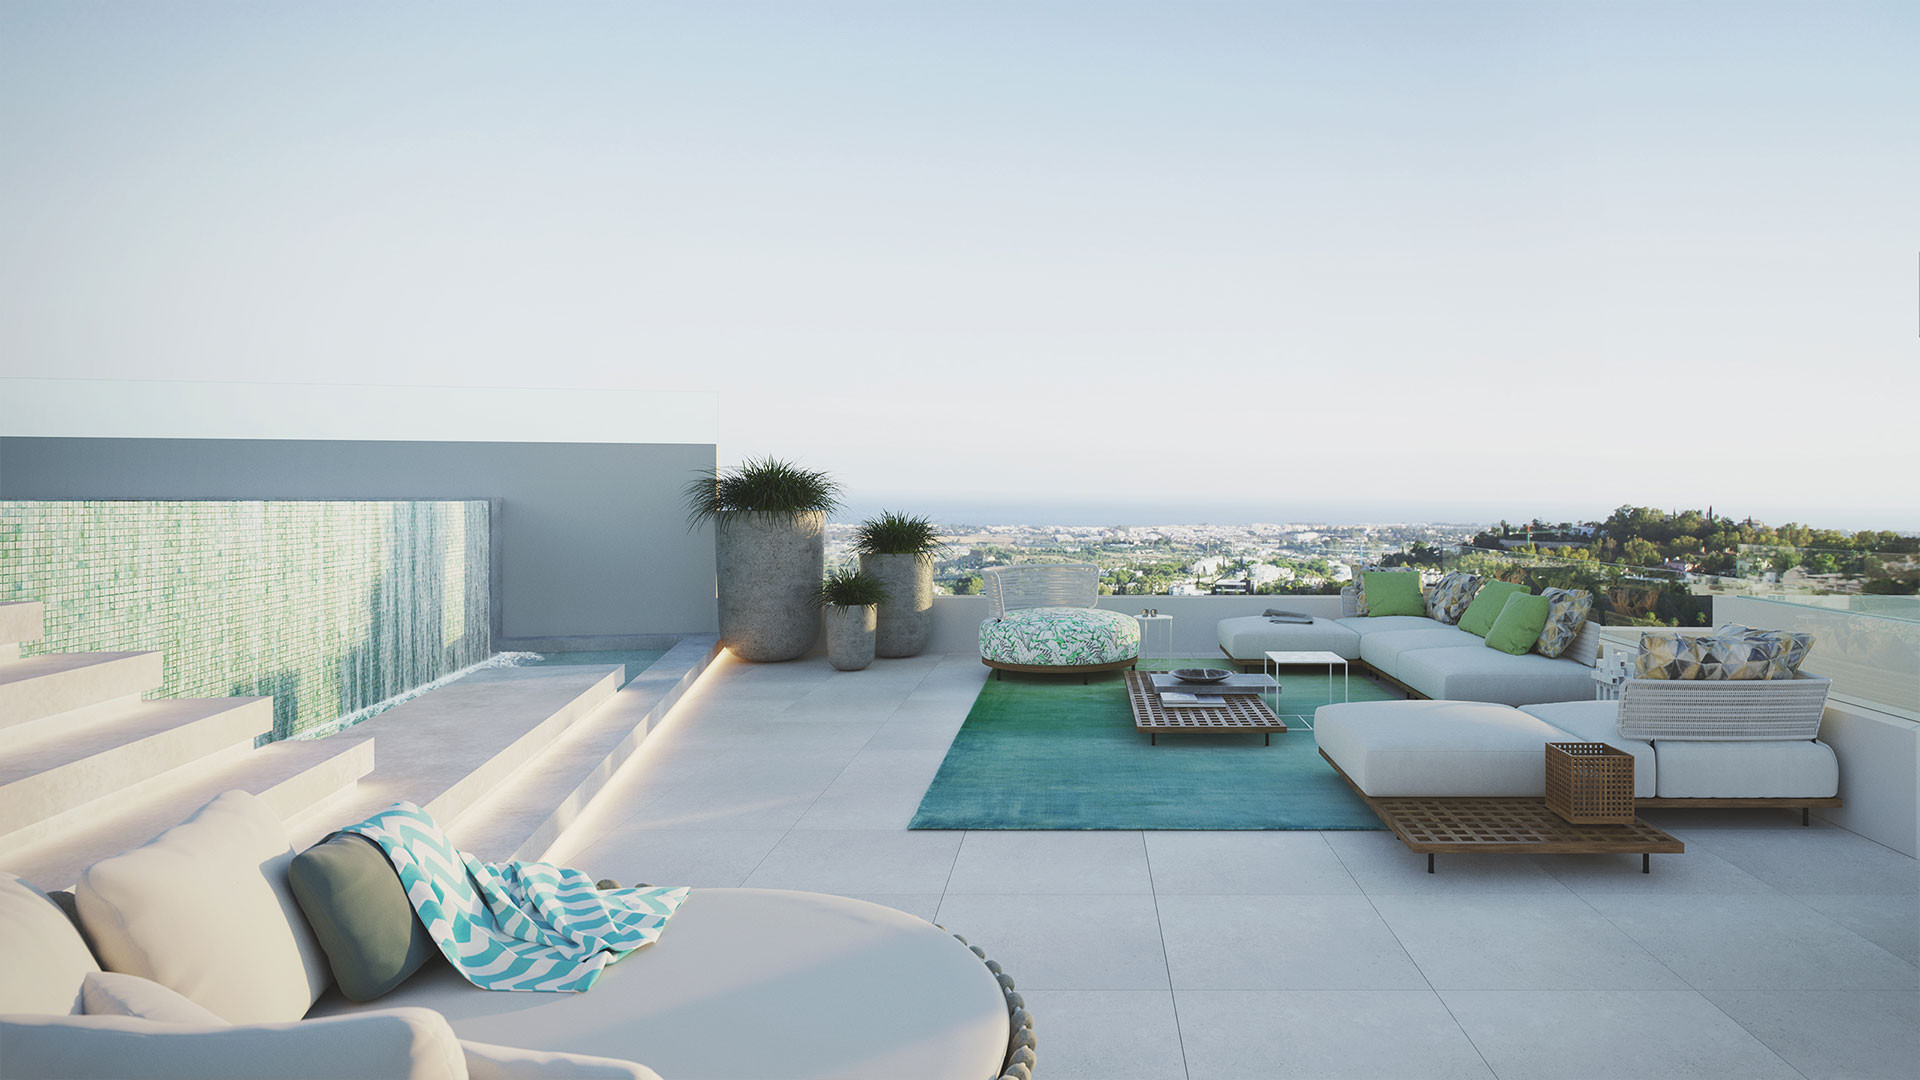 The View Marbella : 49 luxury dwellings with spectacular views to the sea – Benahavis